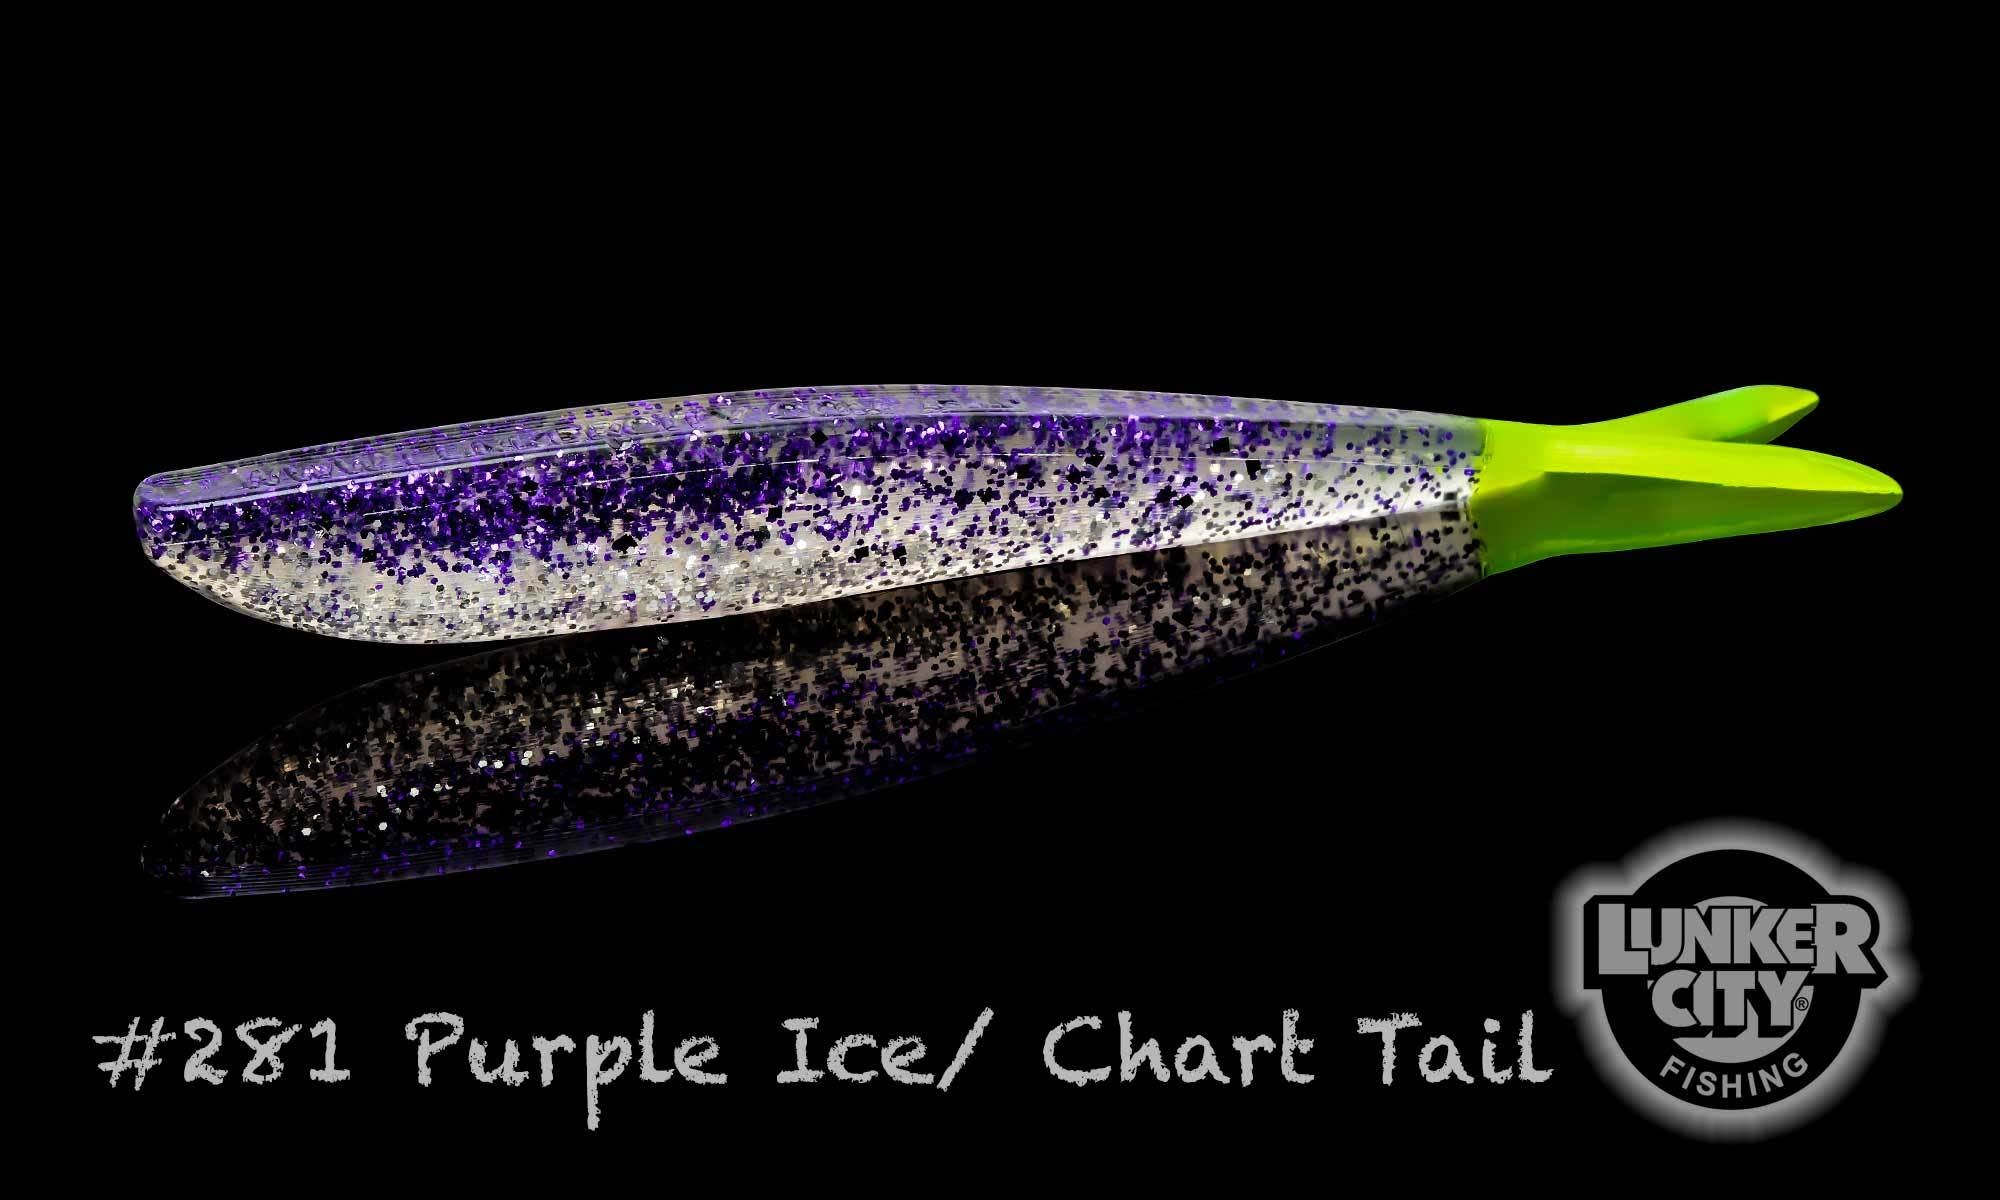 """Lunker City Fishing Specialties Fin-S 4"""" Purple Ice/Chartreuse Tail #281"""